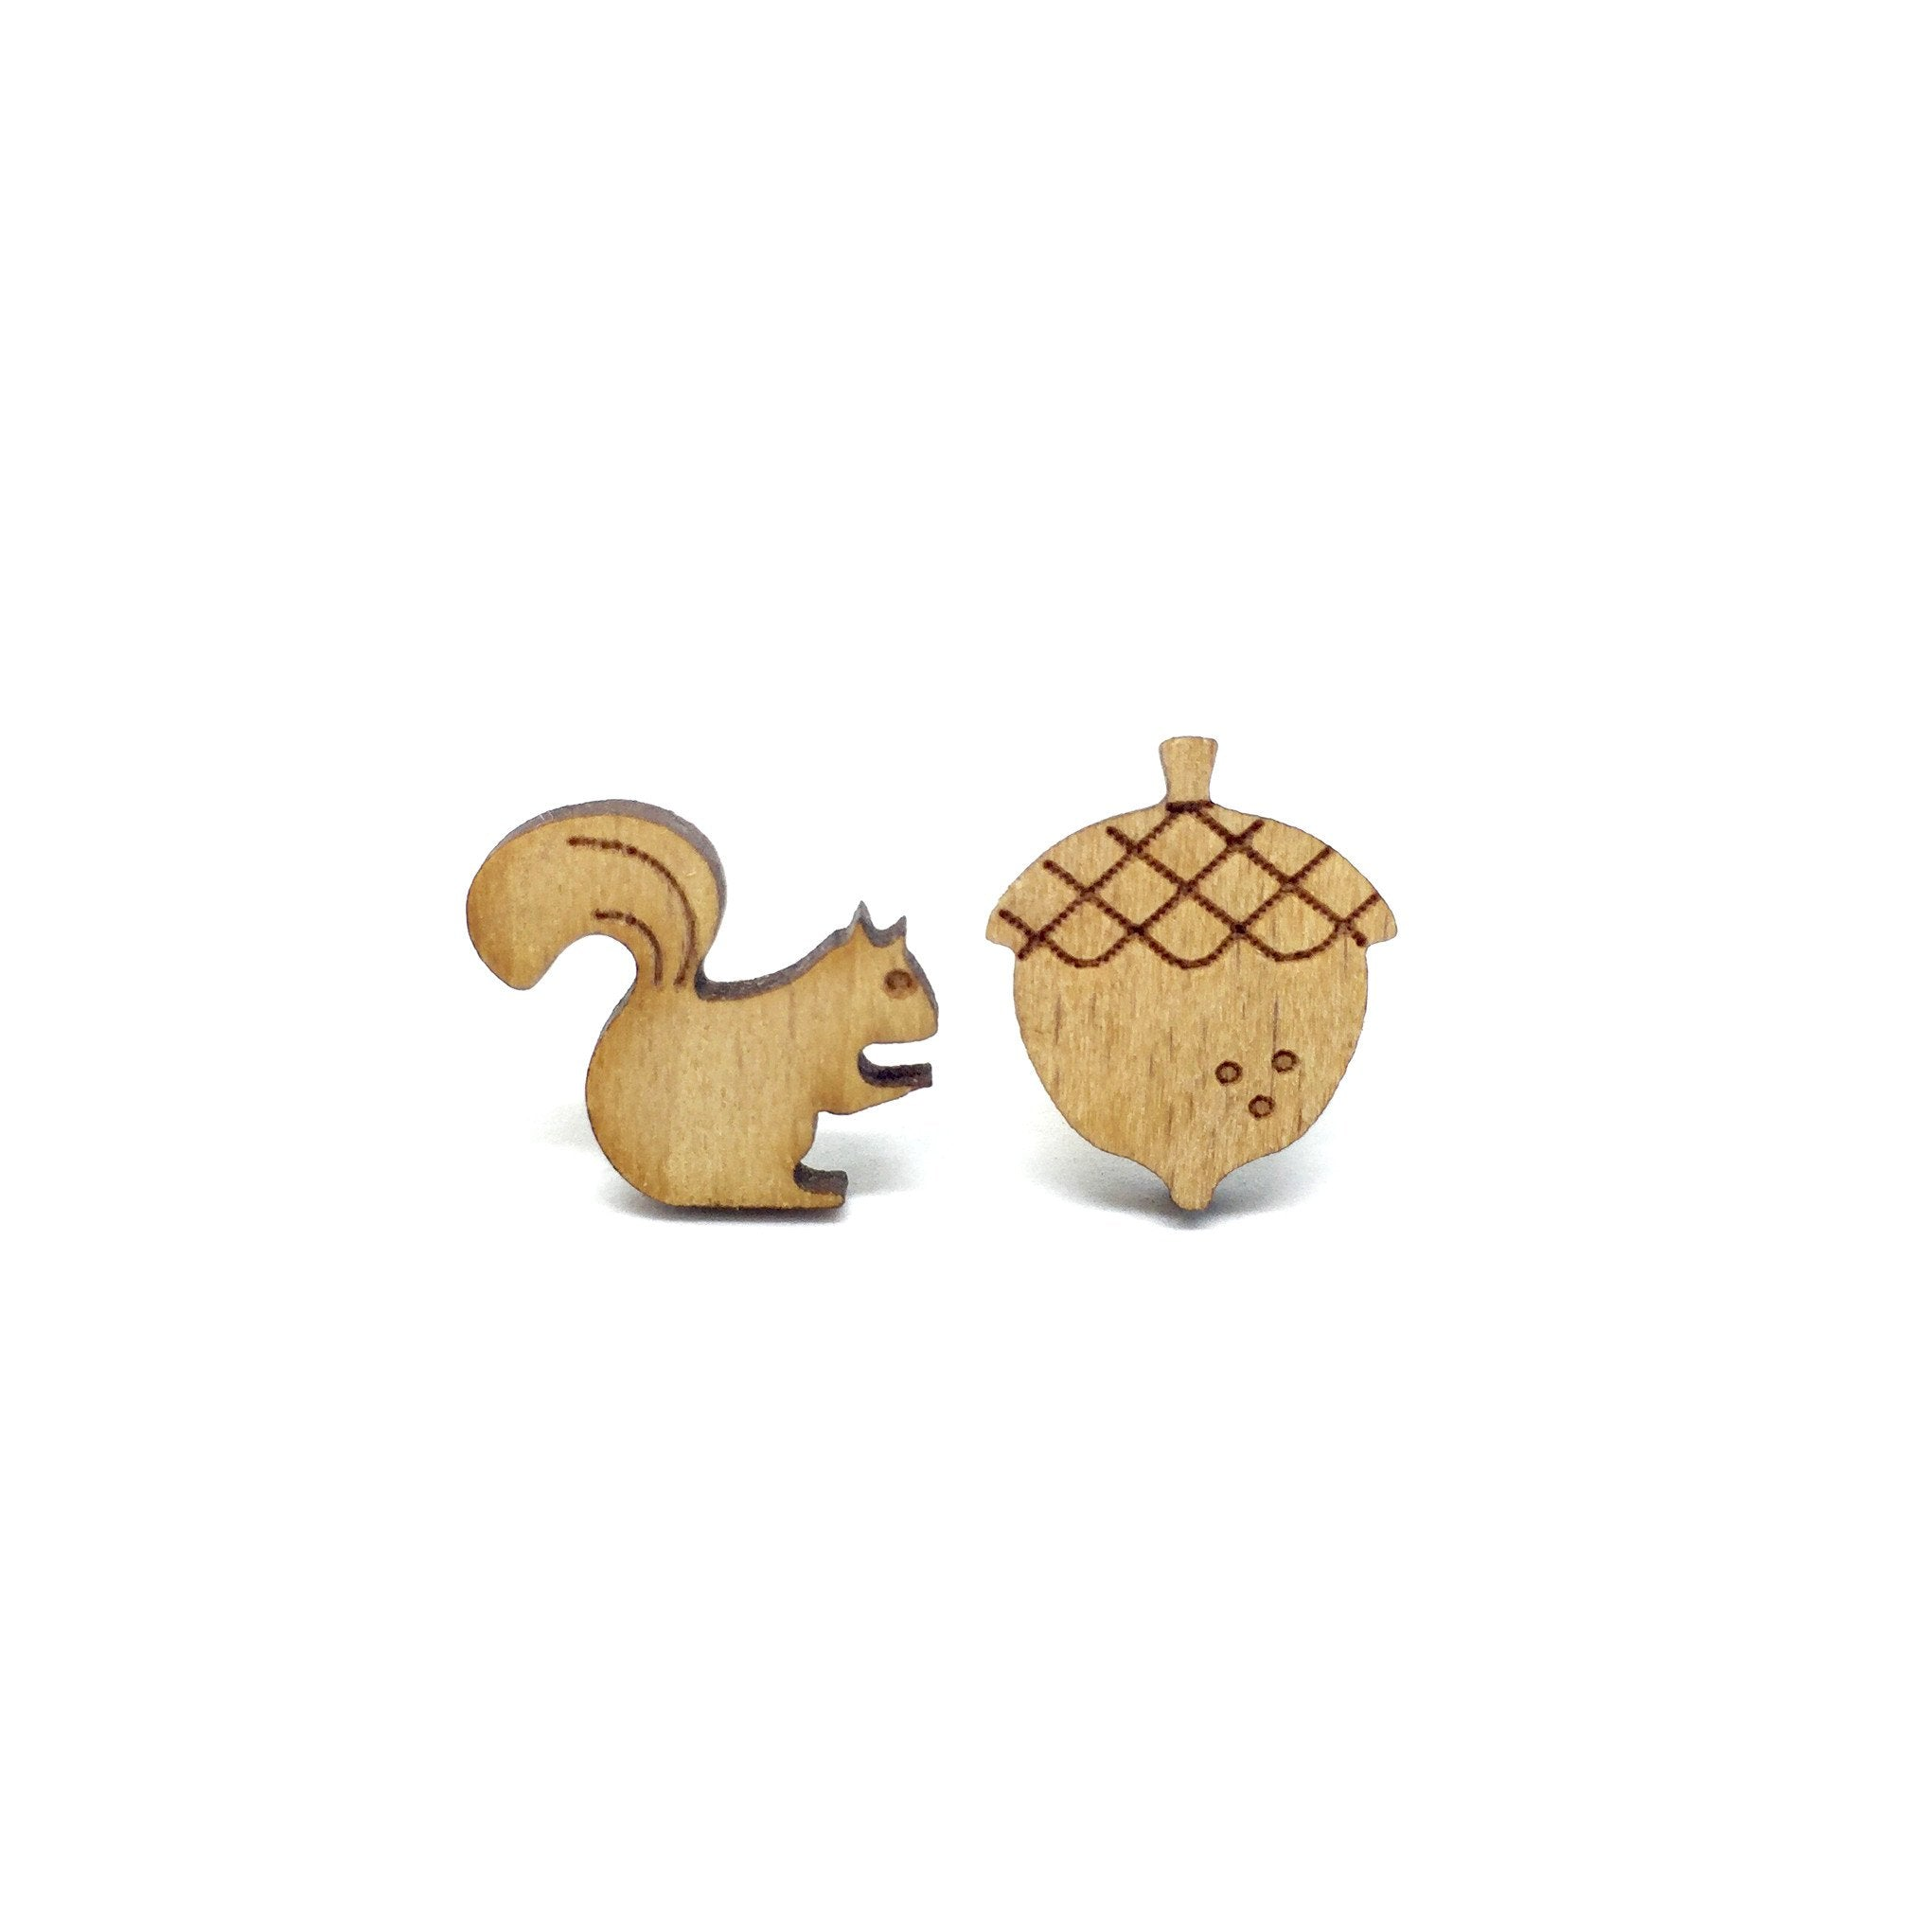 Squirrel Pine Nut Laser Cut Wood Earrings